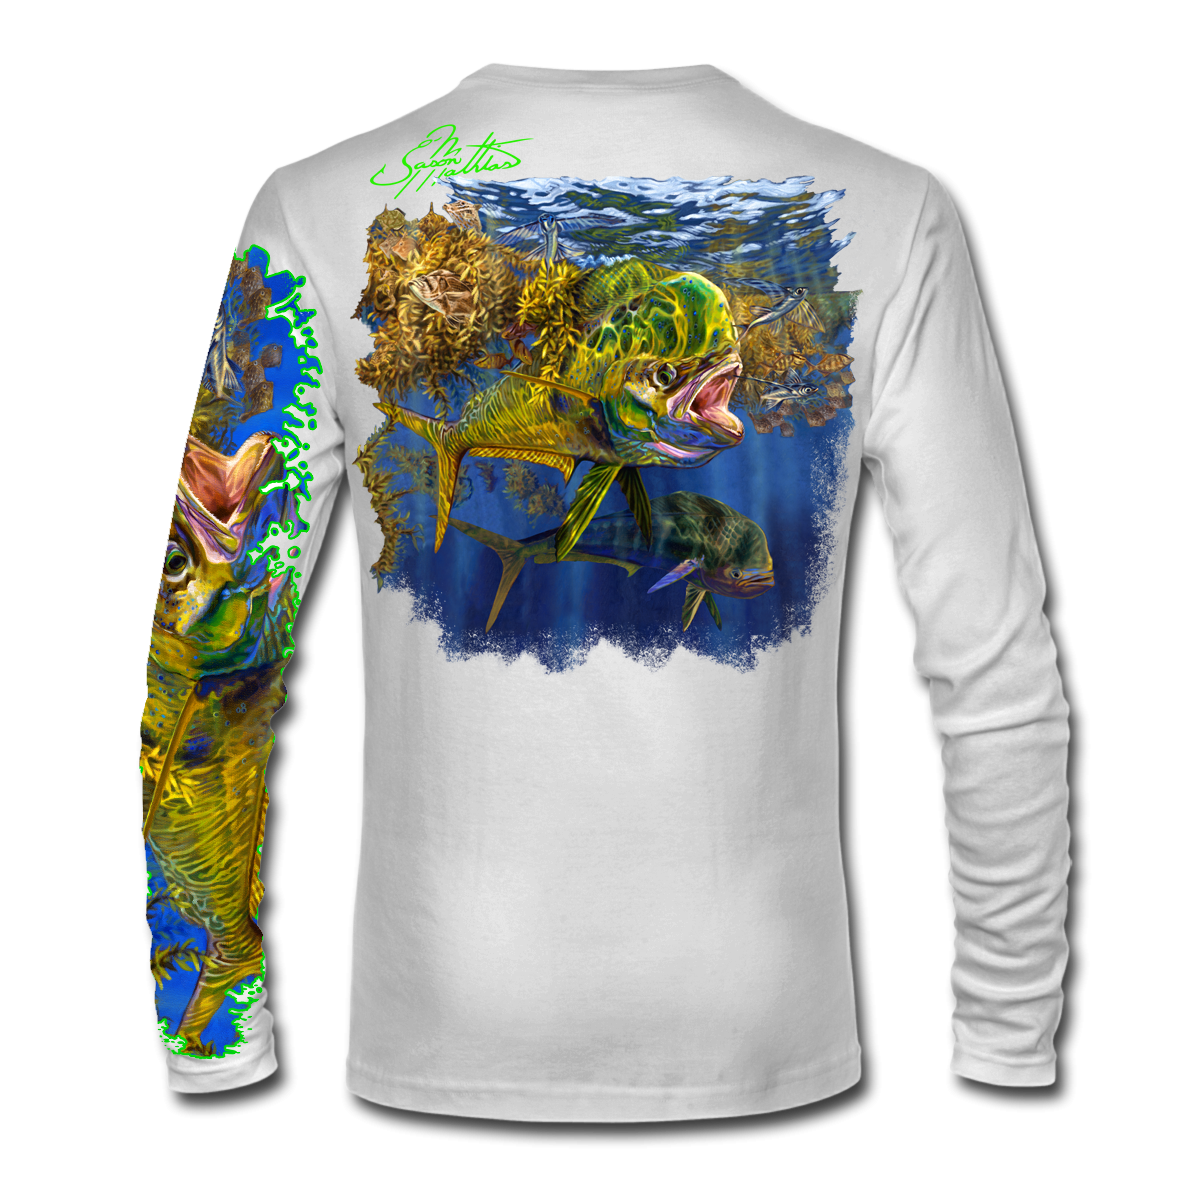 jason-mathias-white-shirt-mahi-mahi-dorado-dolphin-performance-shirt-t-shirt-fishing-apparel-clothing-offshore-gear.png